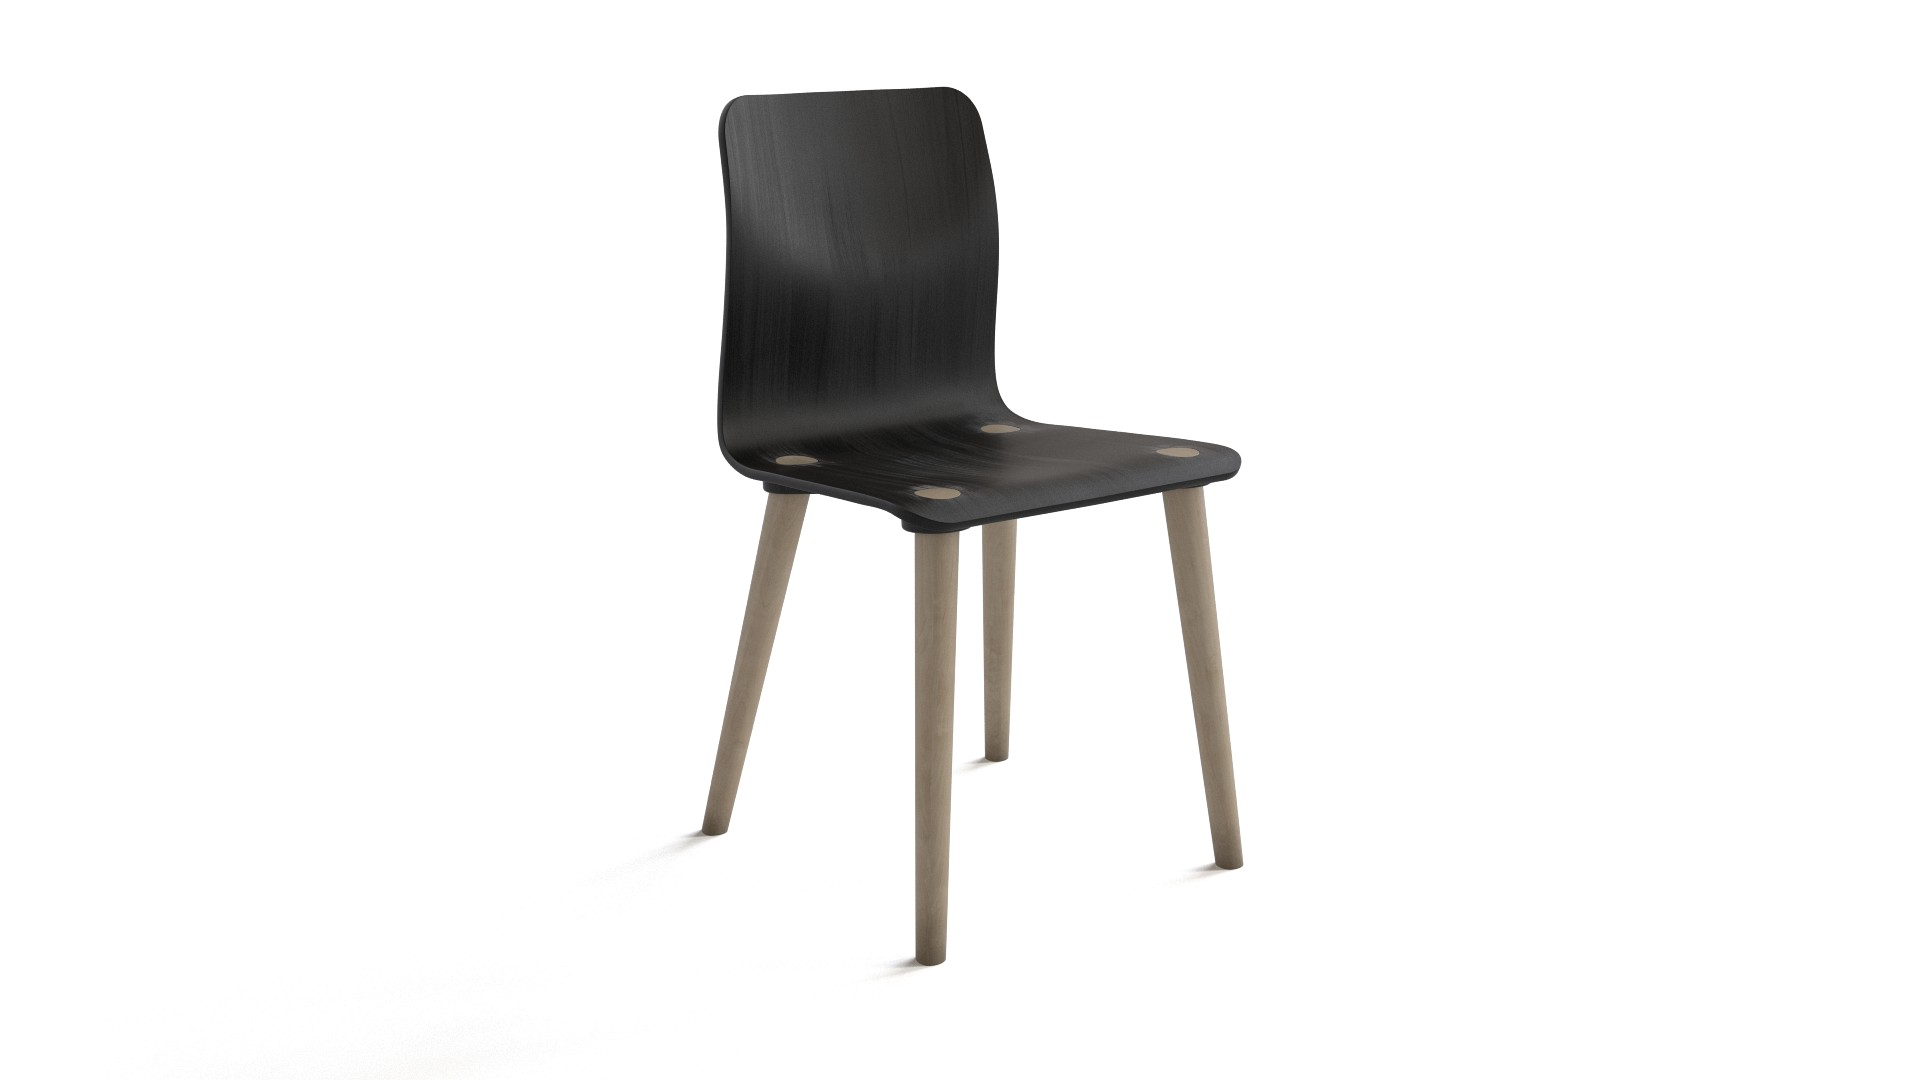 Malmo chair